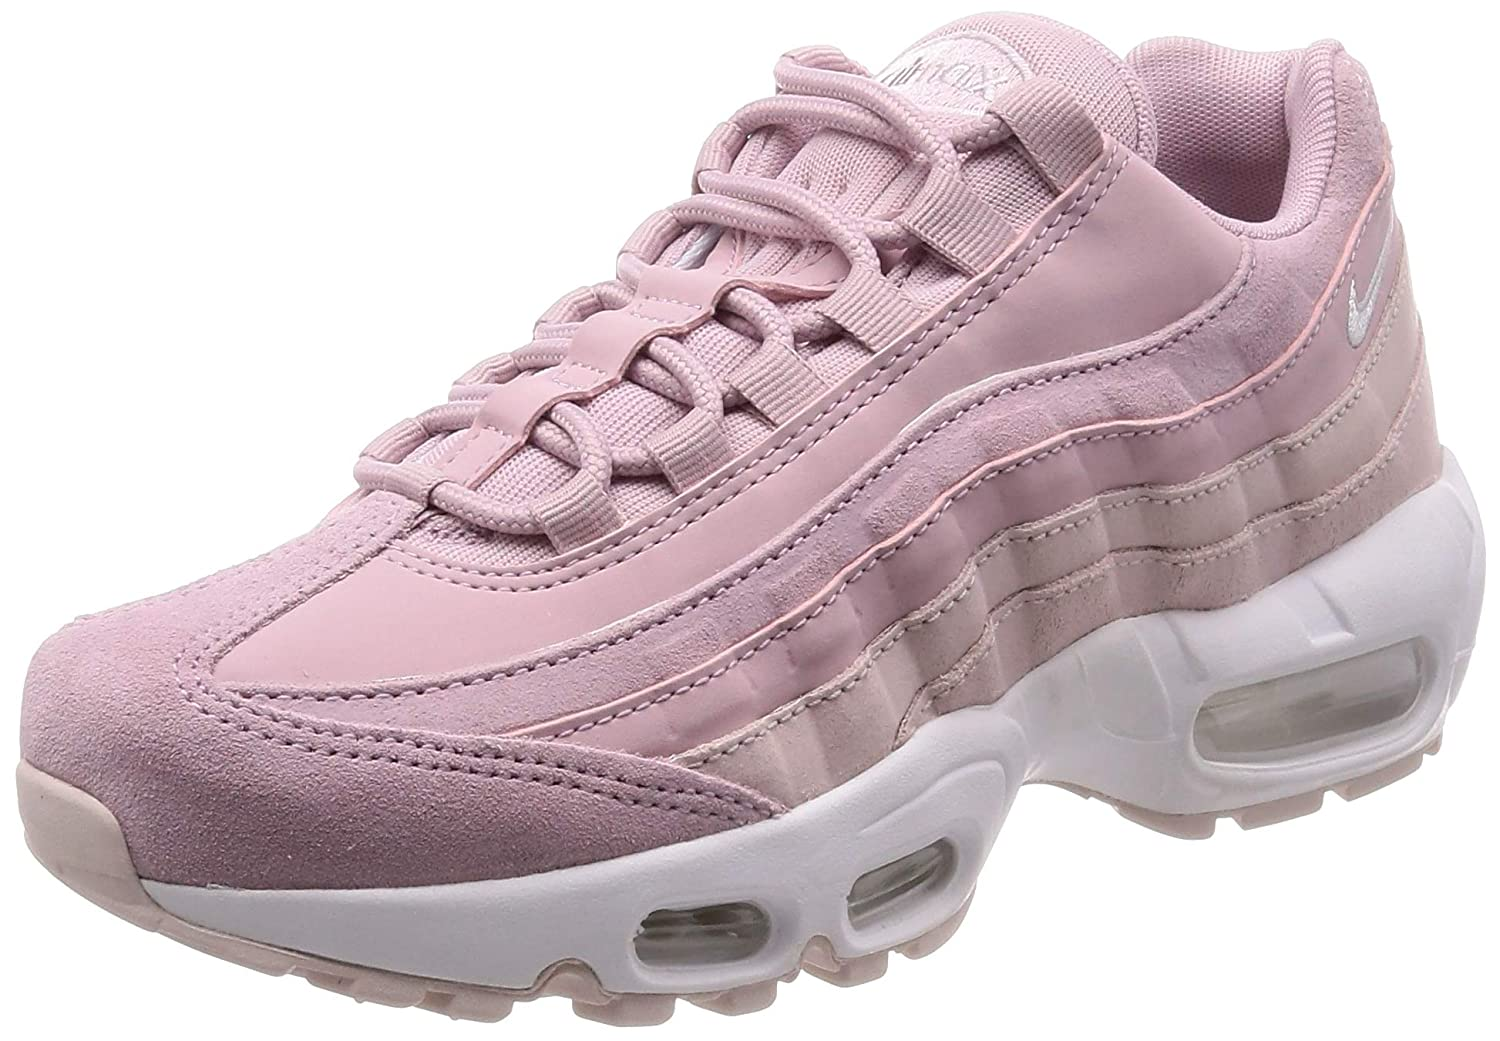 revendeur b3d8a 5c866 Amazon.com | Nike Women's Air Max 95 PRM Plum Chalk/Barely ...